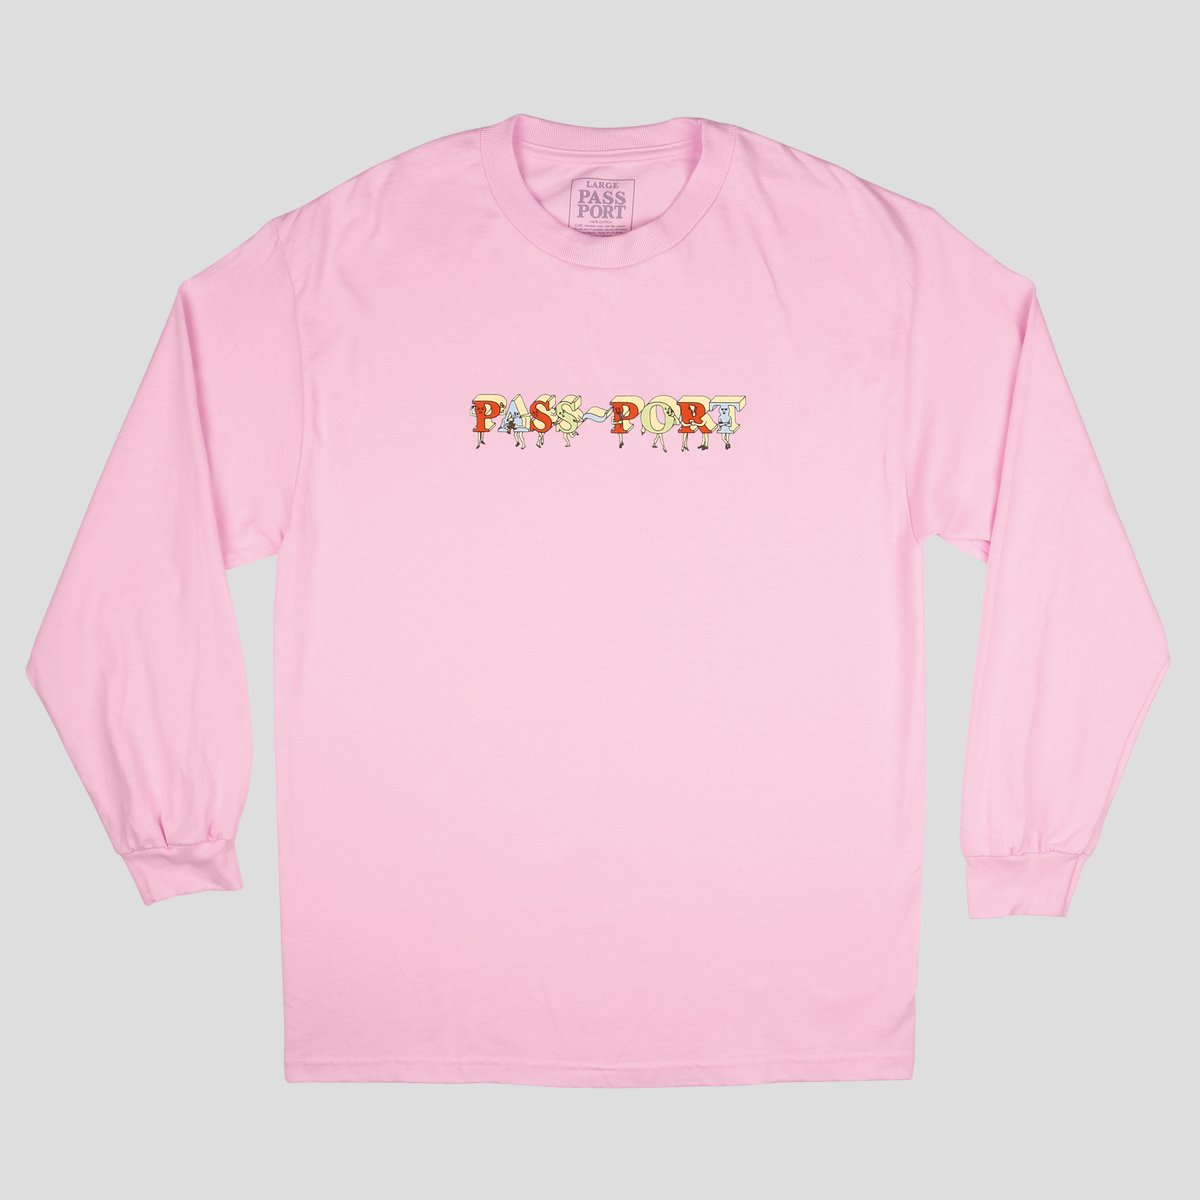 "PASS~PORT ""PP GANG"" L/S TEE PINK"